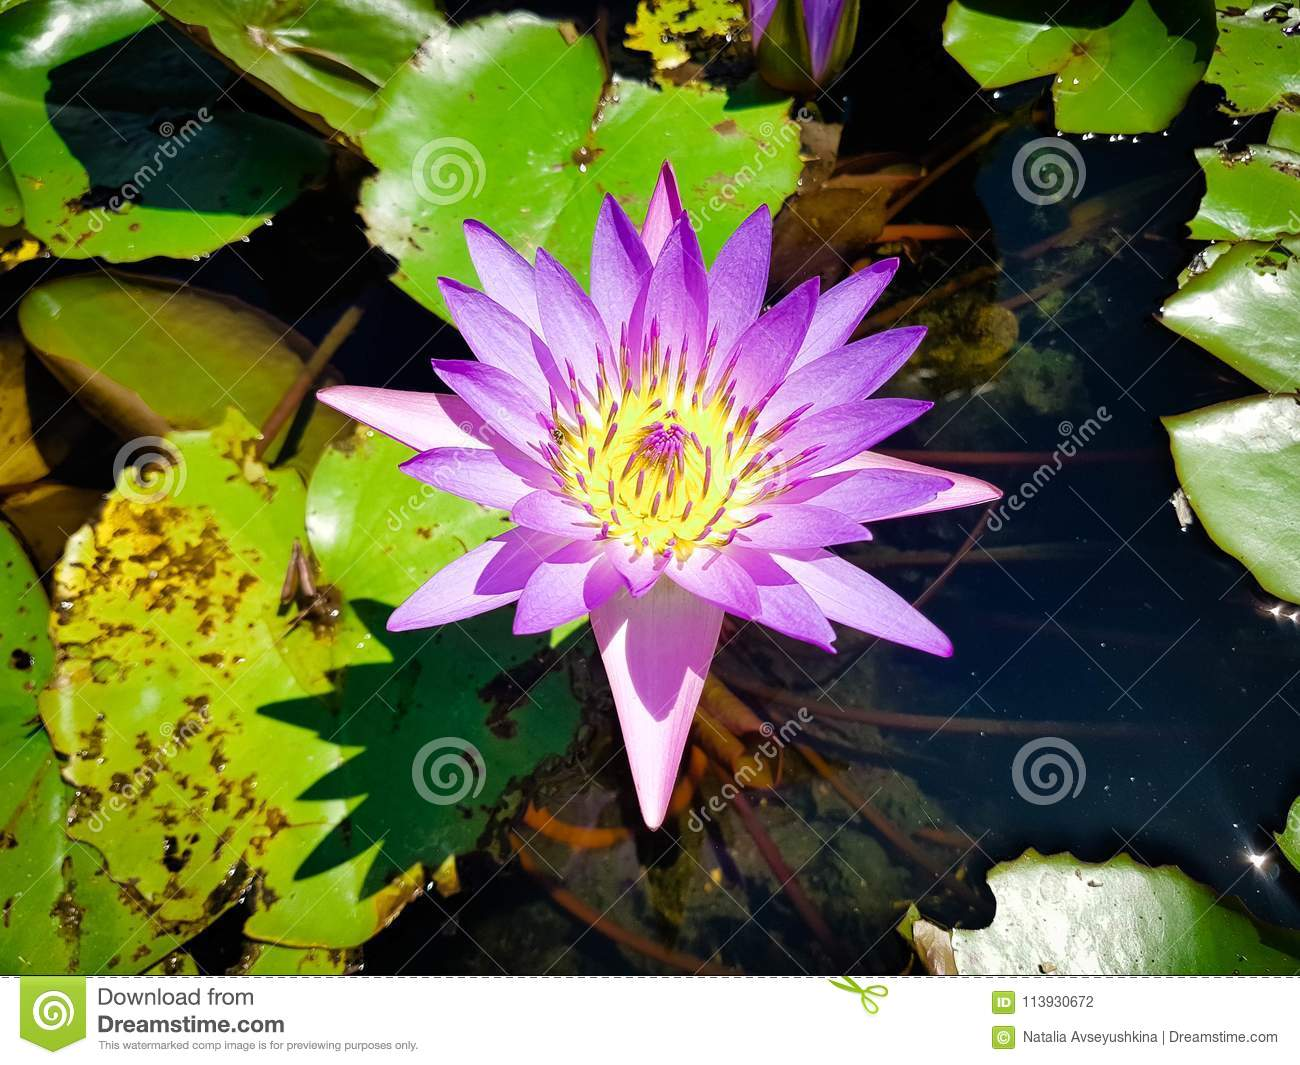 Nymphaea capensis the most beautiful flower of the world stock nymphaea capensis the most beautiful flower of the world izmirmasajfo